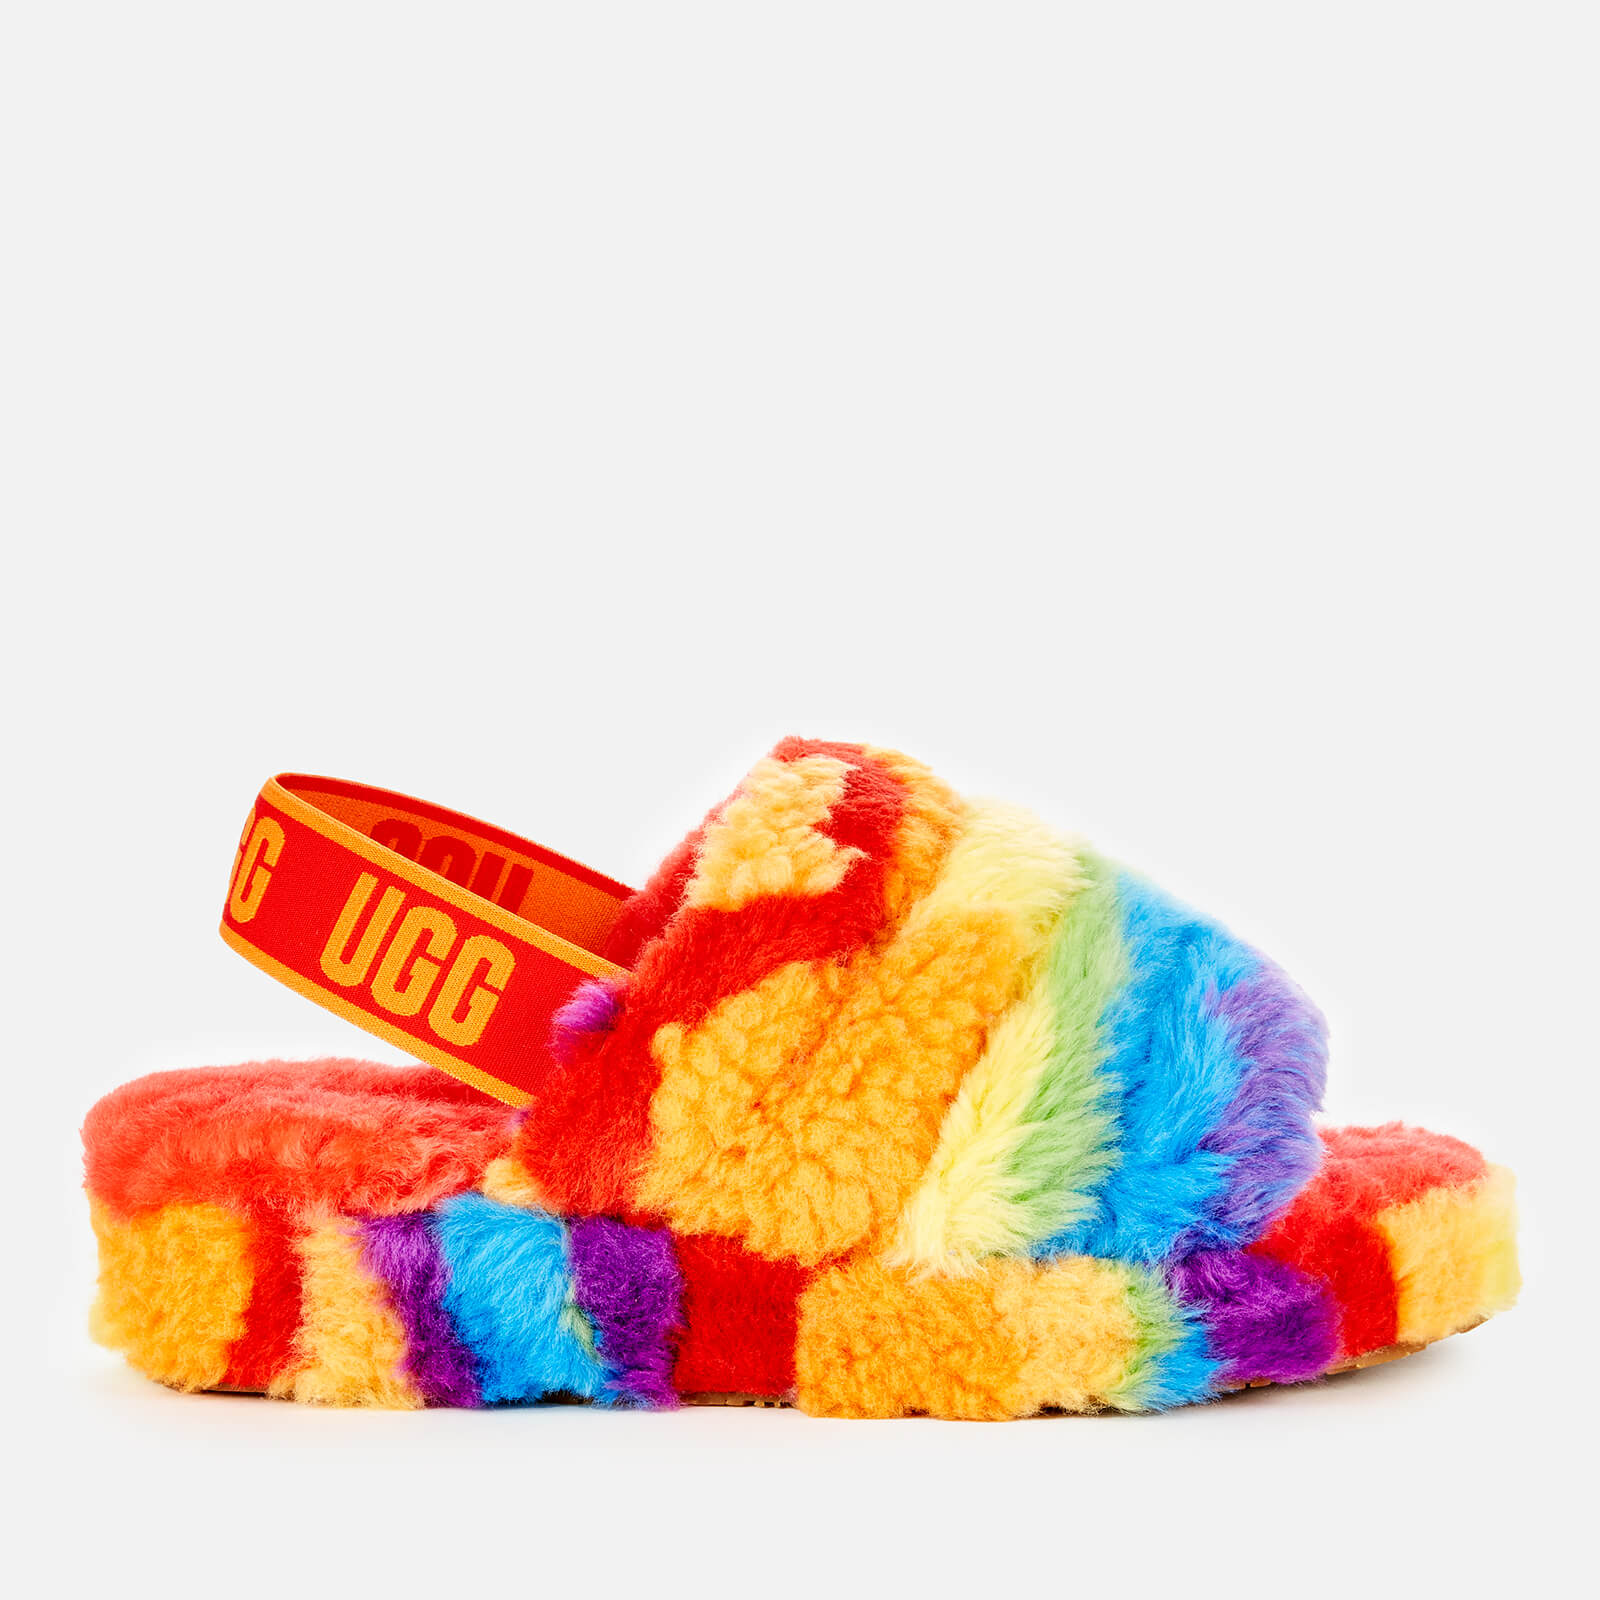 Ugg Women's Fluff Yeah Pride Collection Slippers - Rainbow Stripe - Uk 3